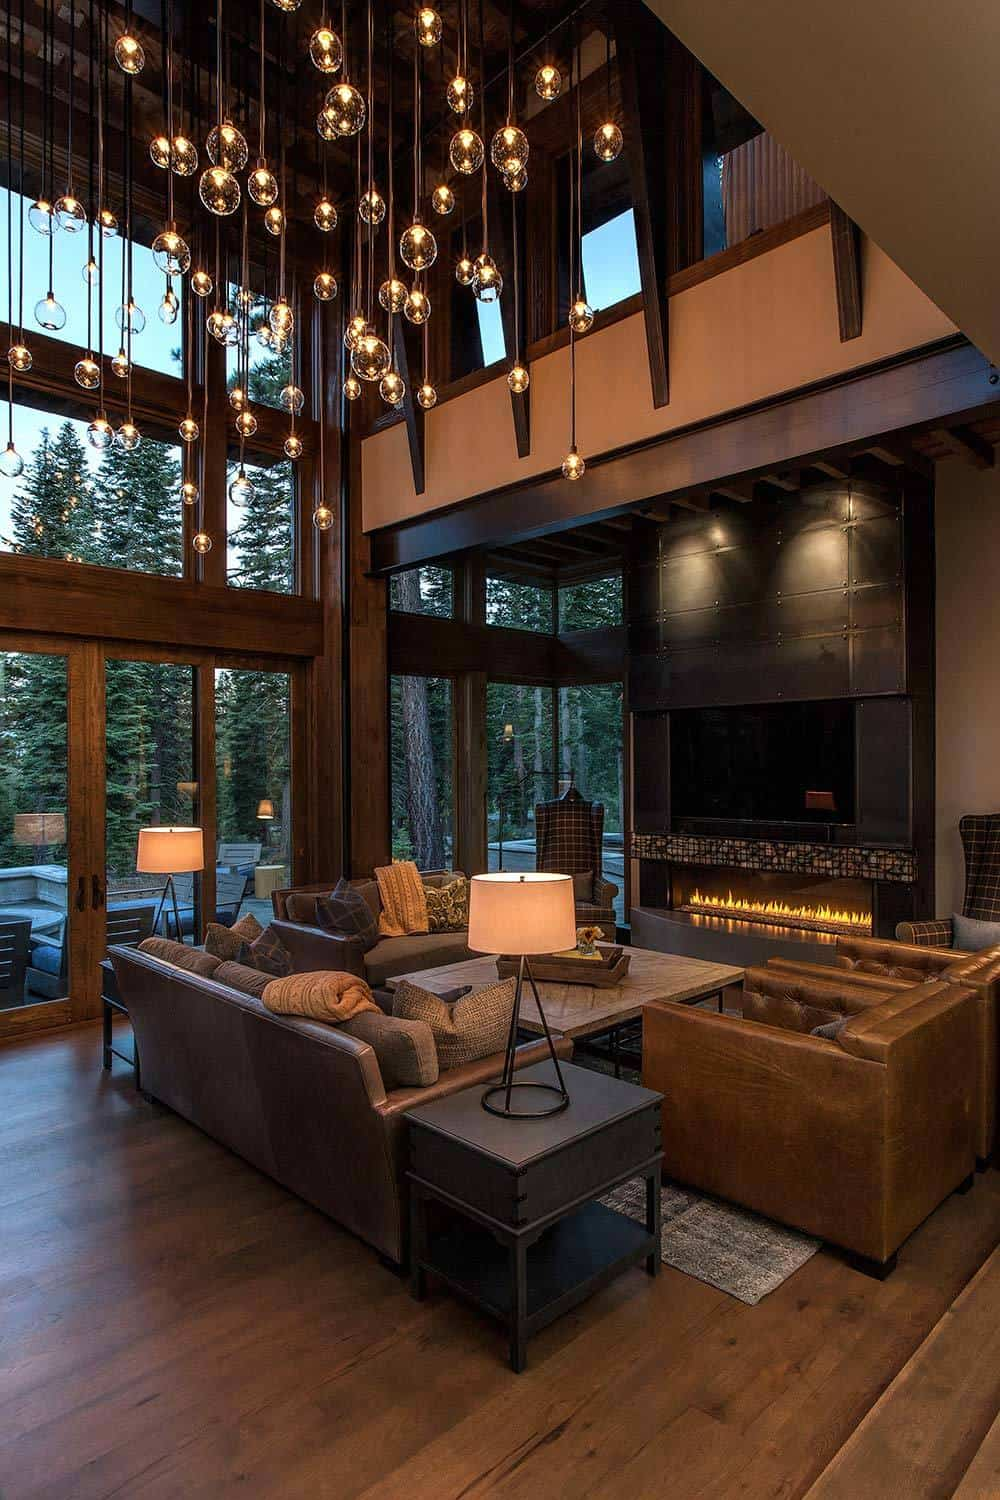 Lake tahoe getaway features contemporary barn aesthetic for Contemporary home decor